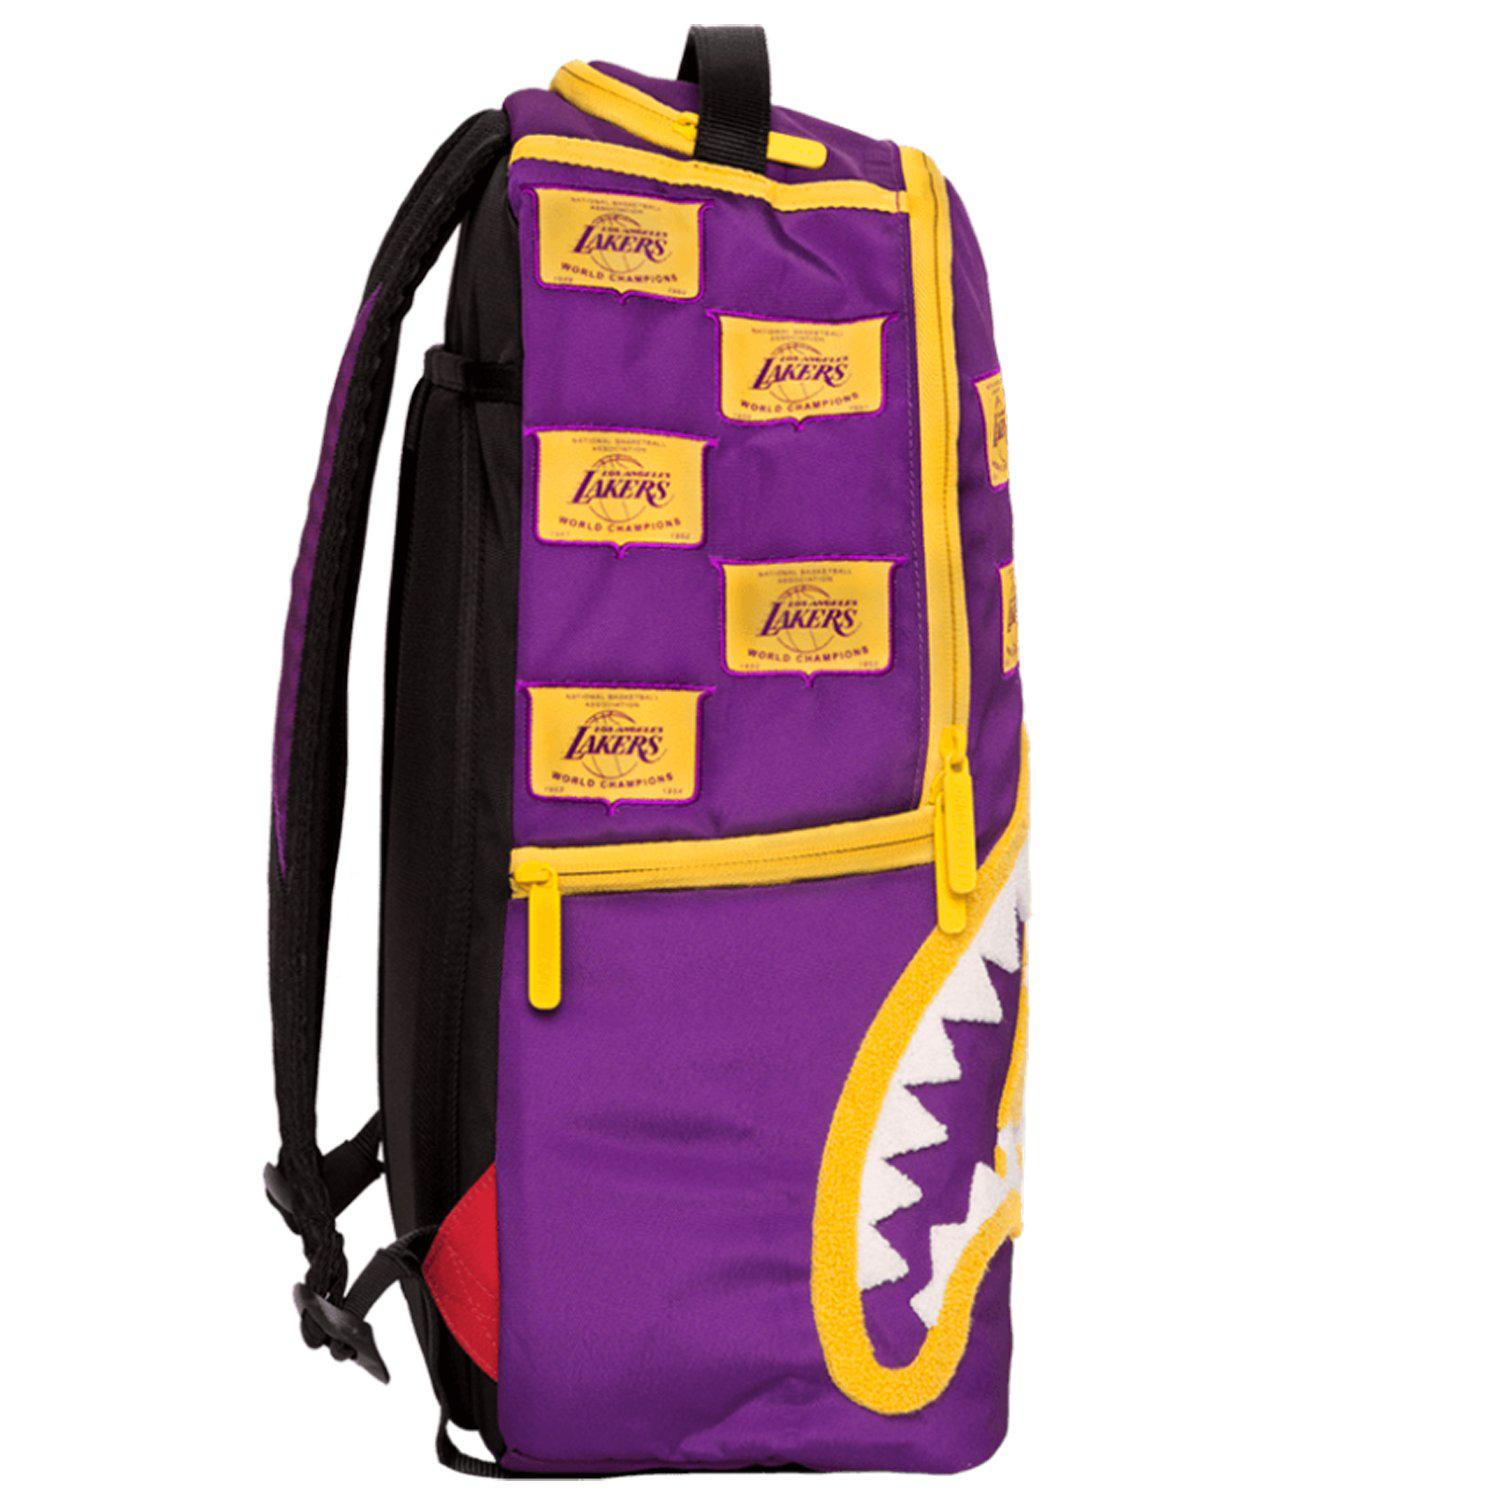 Lyst - Sprayground Nba Lab Lakers Patches Backpack a06176915aa37